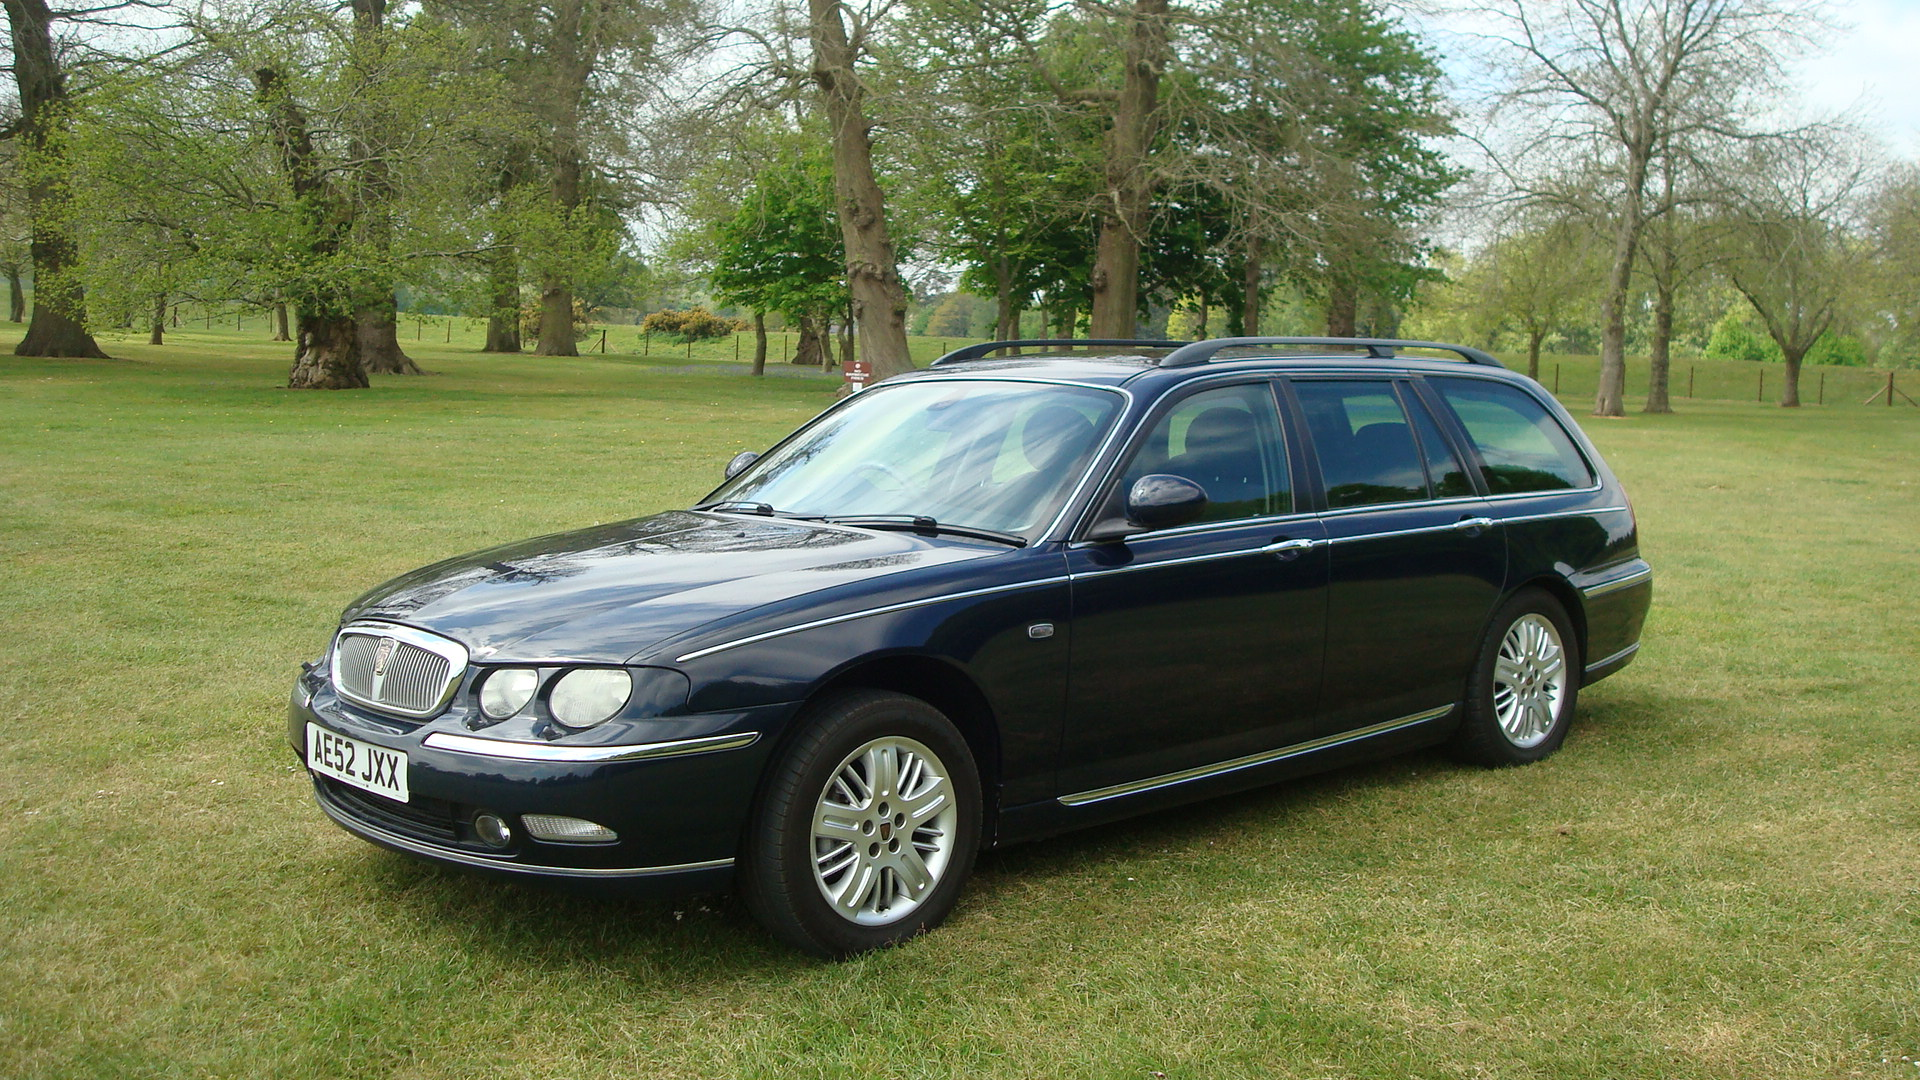 rover 75 diesel club se tourer country classics country classics. Black Bedroom Furniture Sets. Home Design Ideas